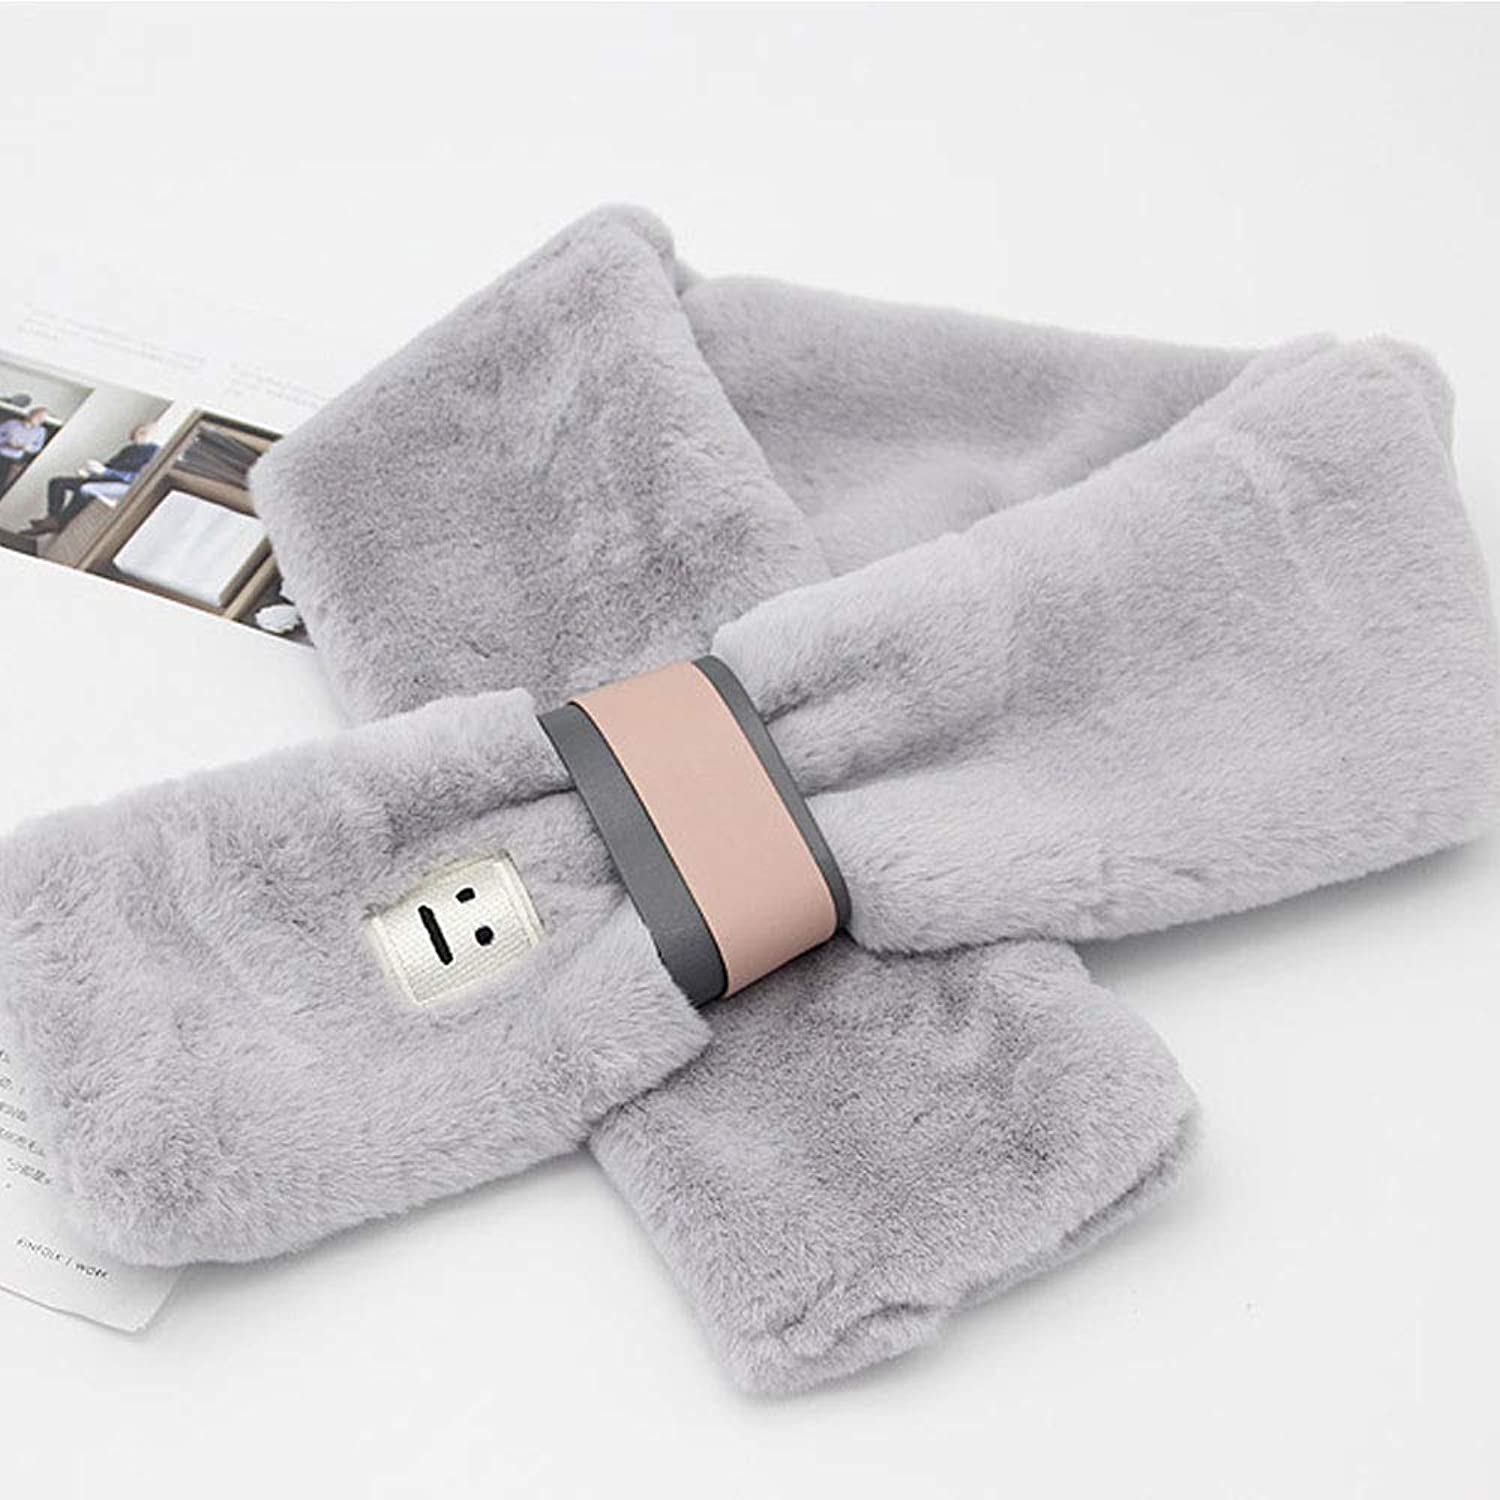 LBY Scarf Female Winter Soft Sister Imitation Fur Small Fresh Plush Bib Scarf (color   color 2)